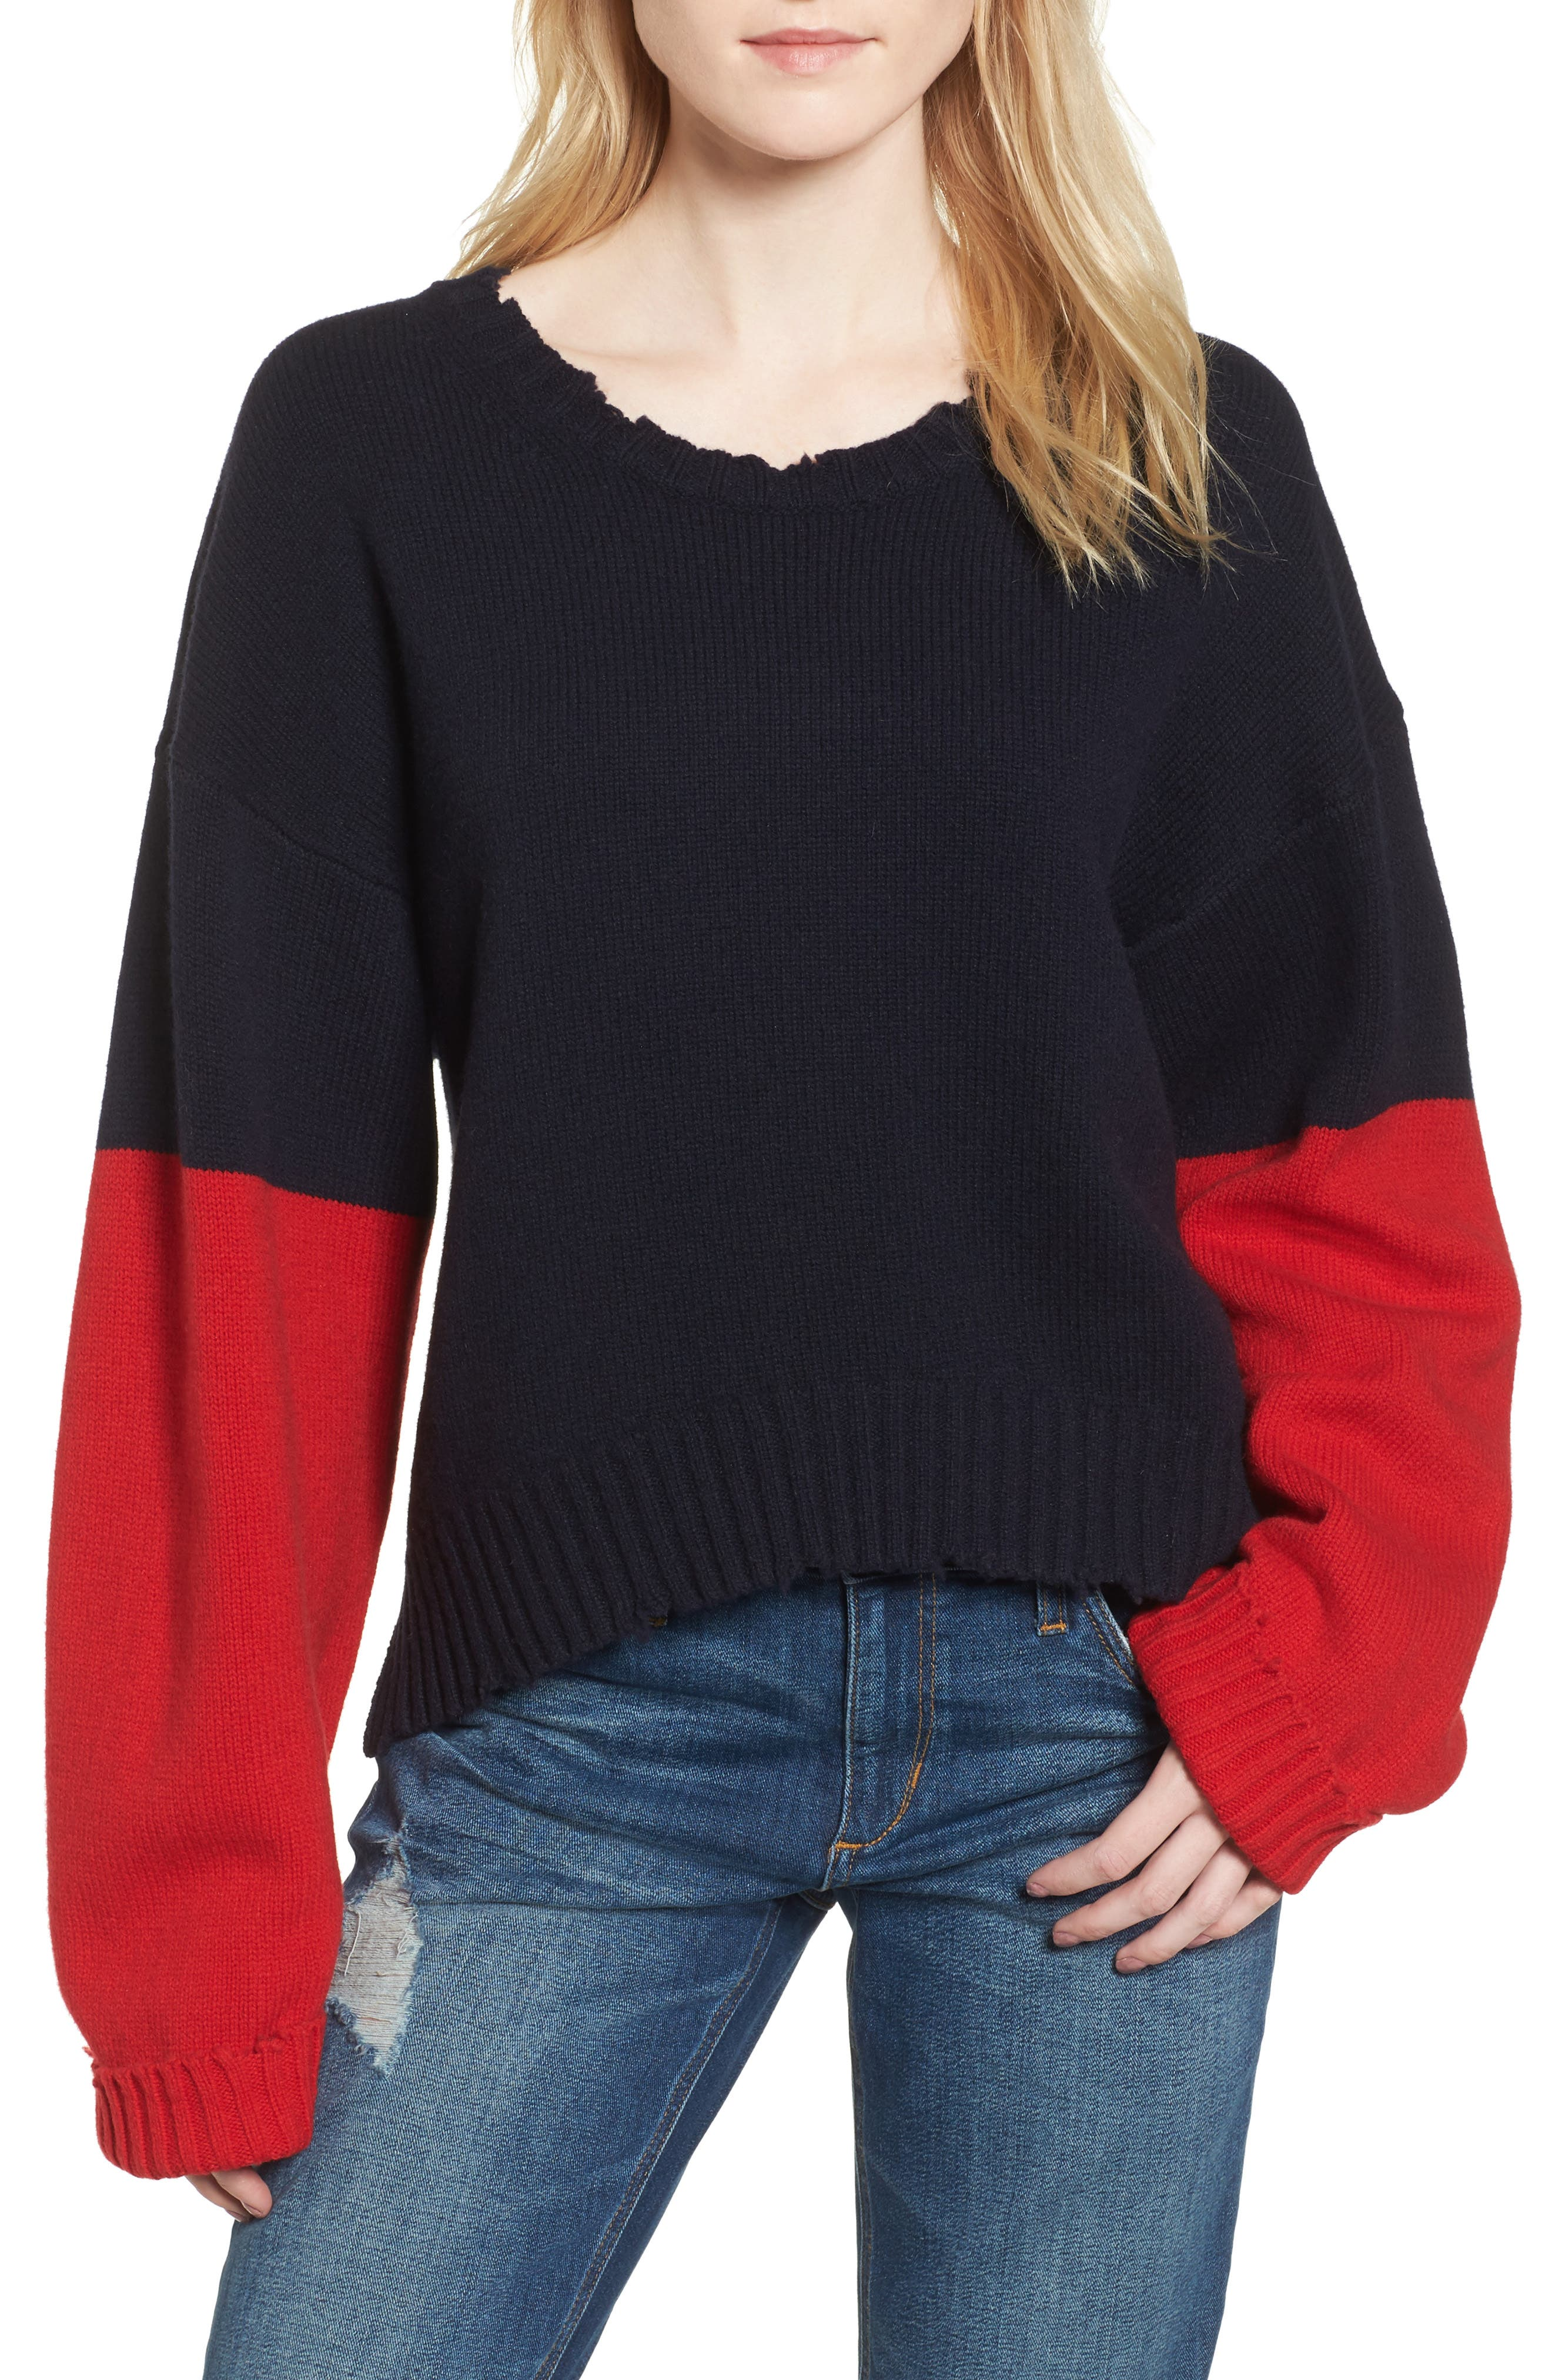 Clarys Sweater,                         Main,                         color,